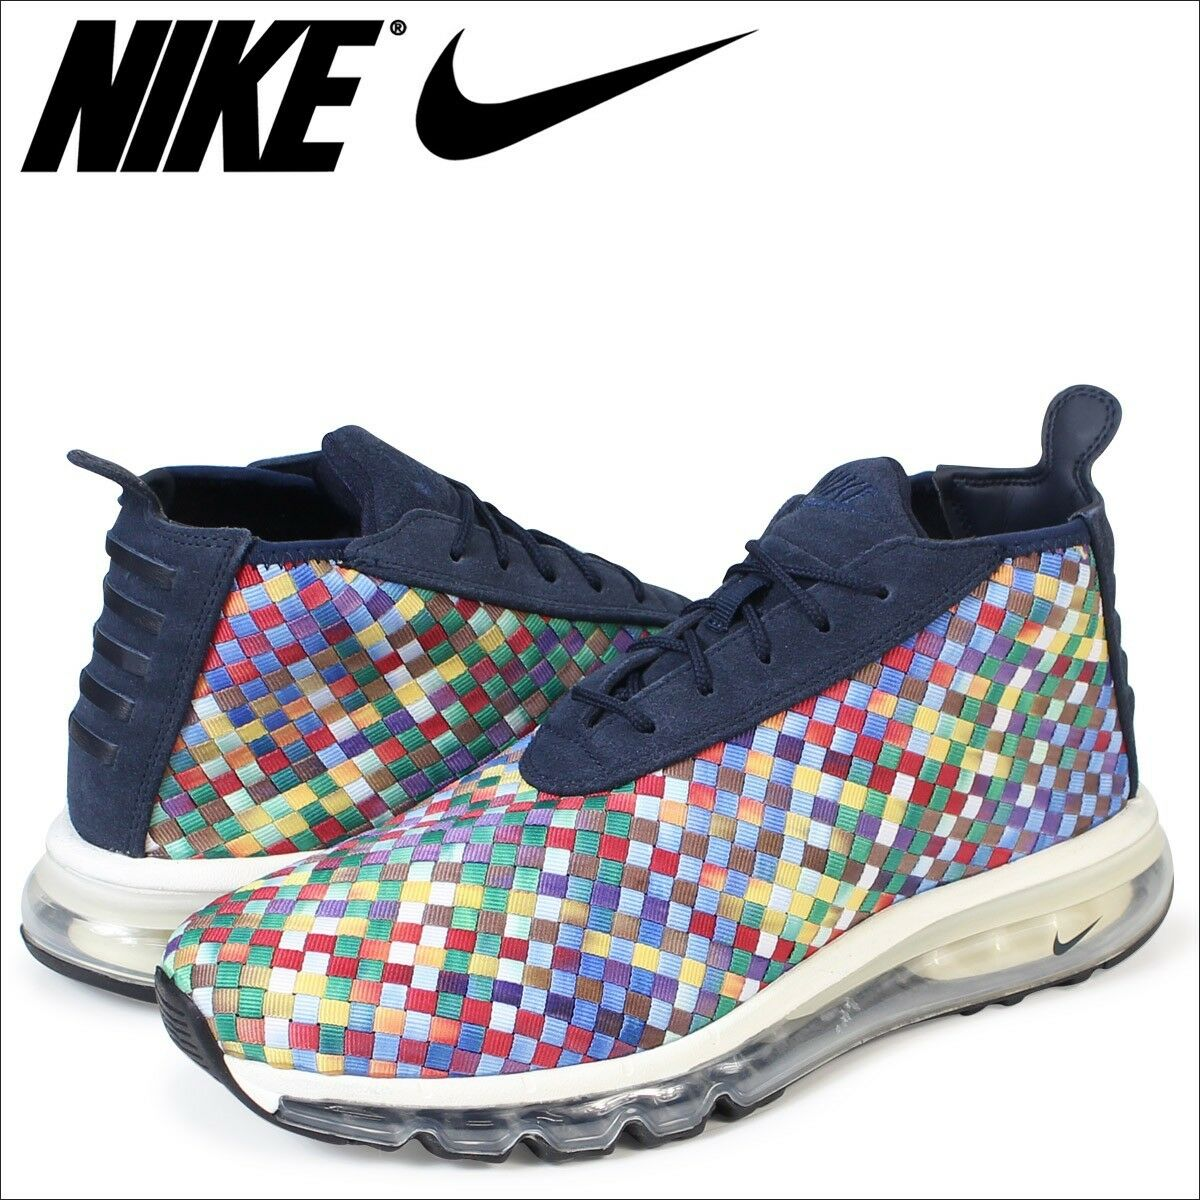 Nike Air Max Woven Boot SE AH8139 New Without Box Multicolor Men Size 10.5